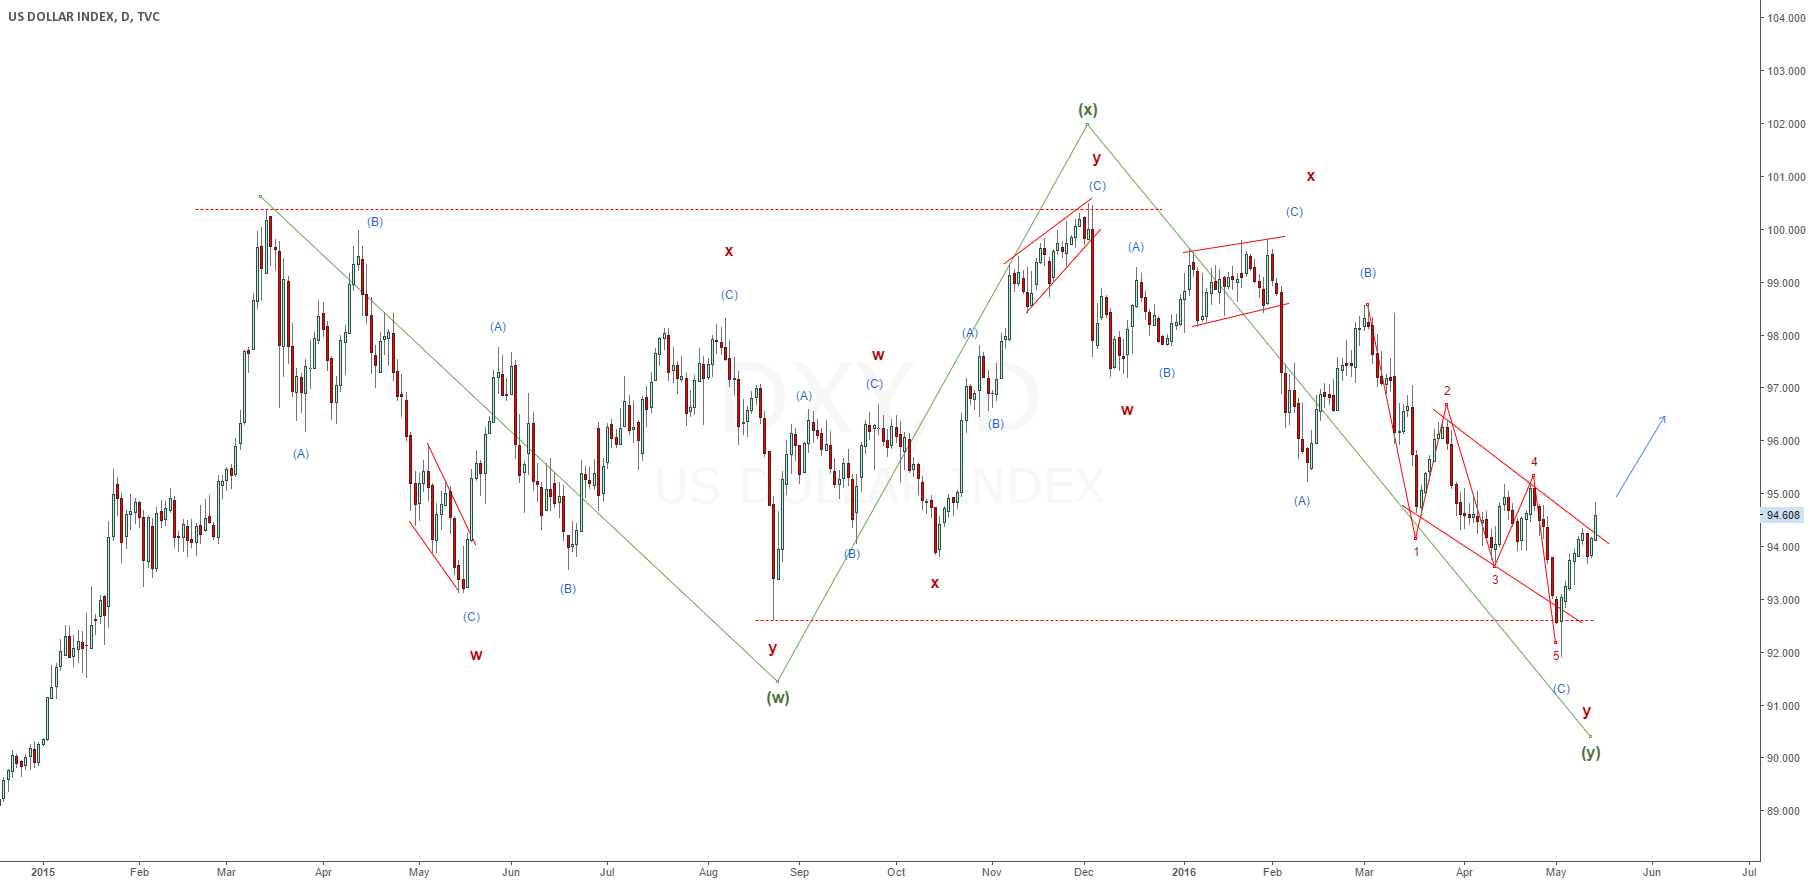 DXY Starts a New Bull Cycle